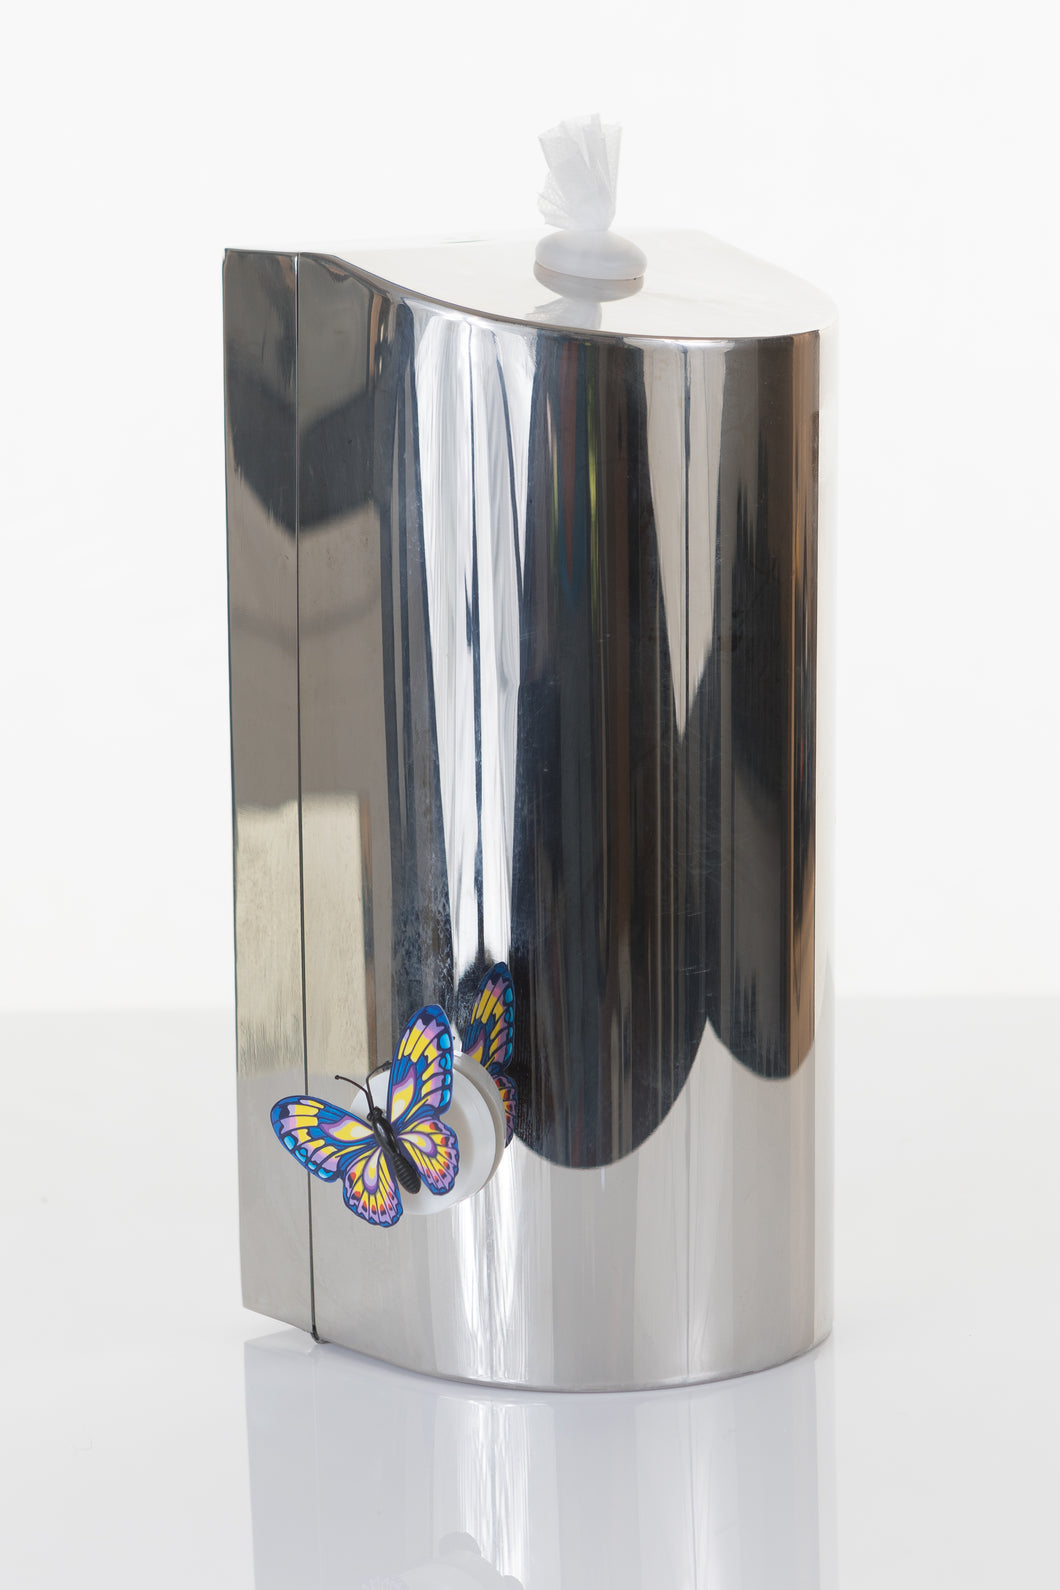 Polished Stainless Steel wall mounted dispenser